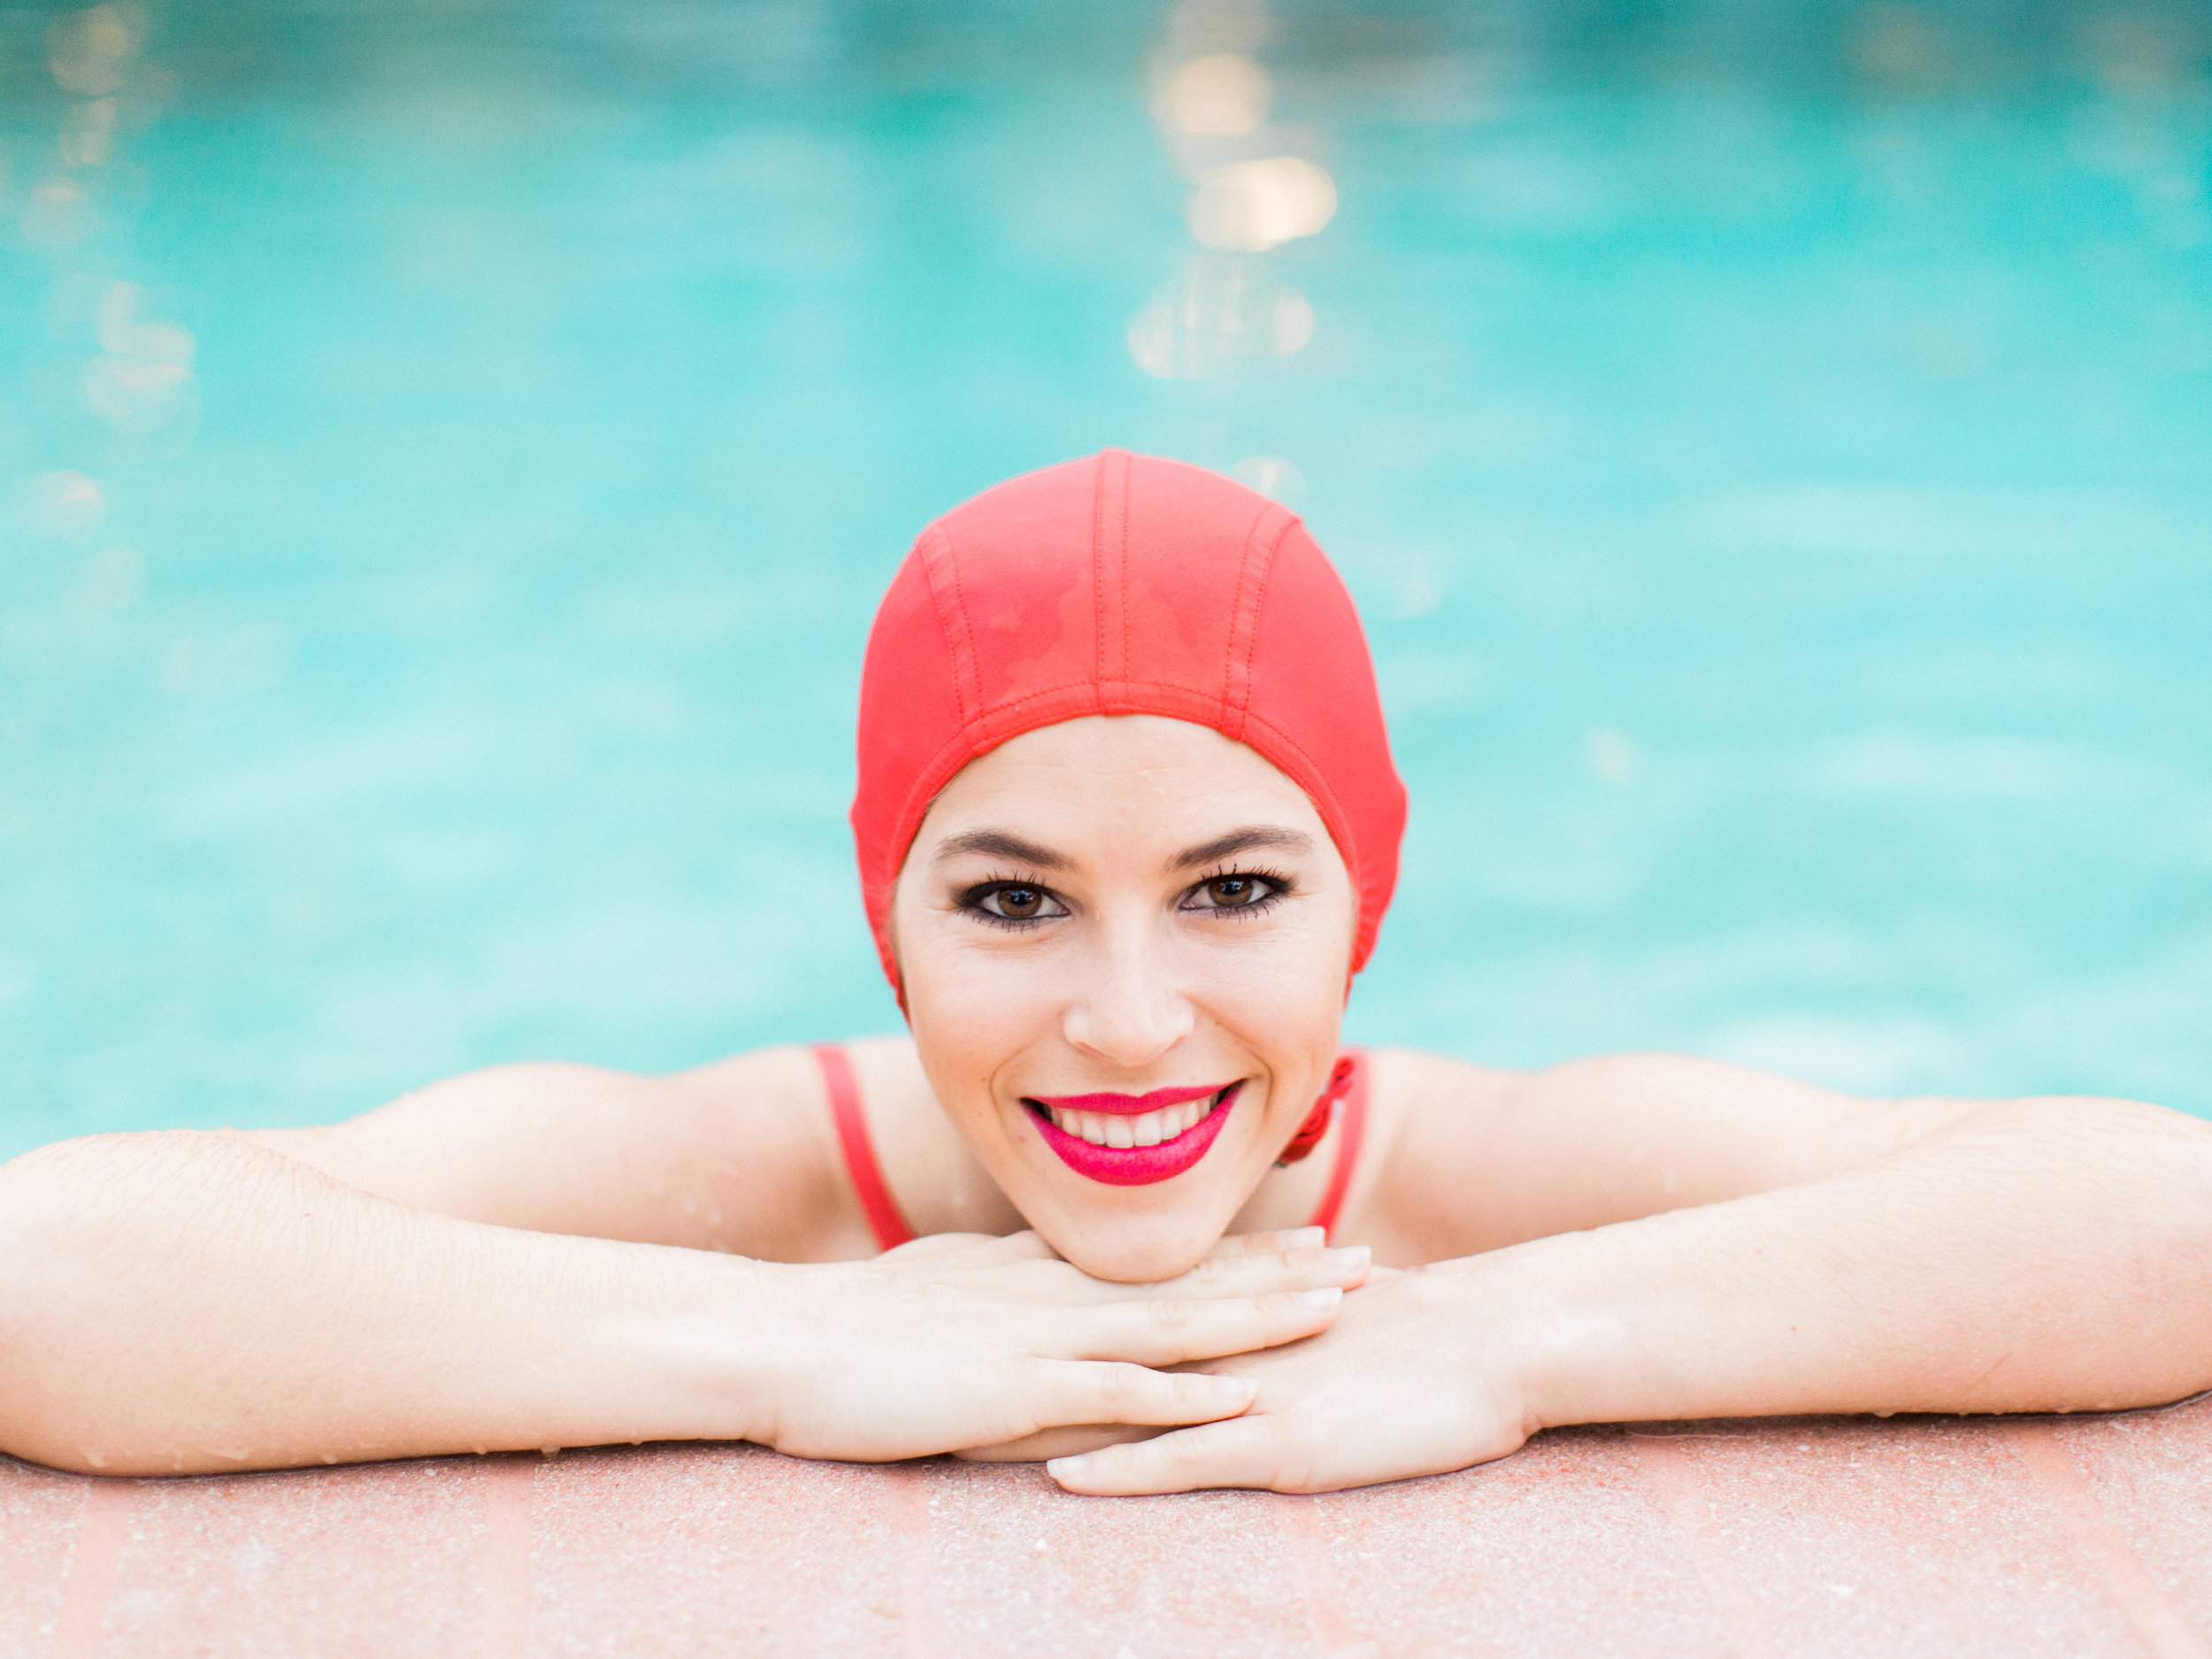 Rachel Red Photography  for  Aqualillies x Charleston Weekender